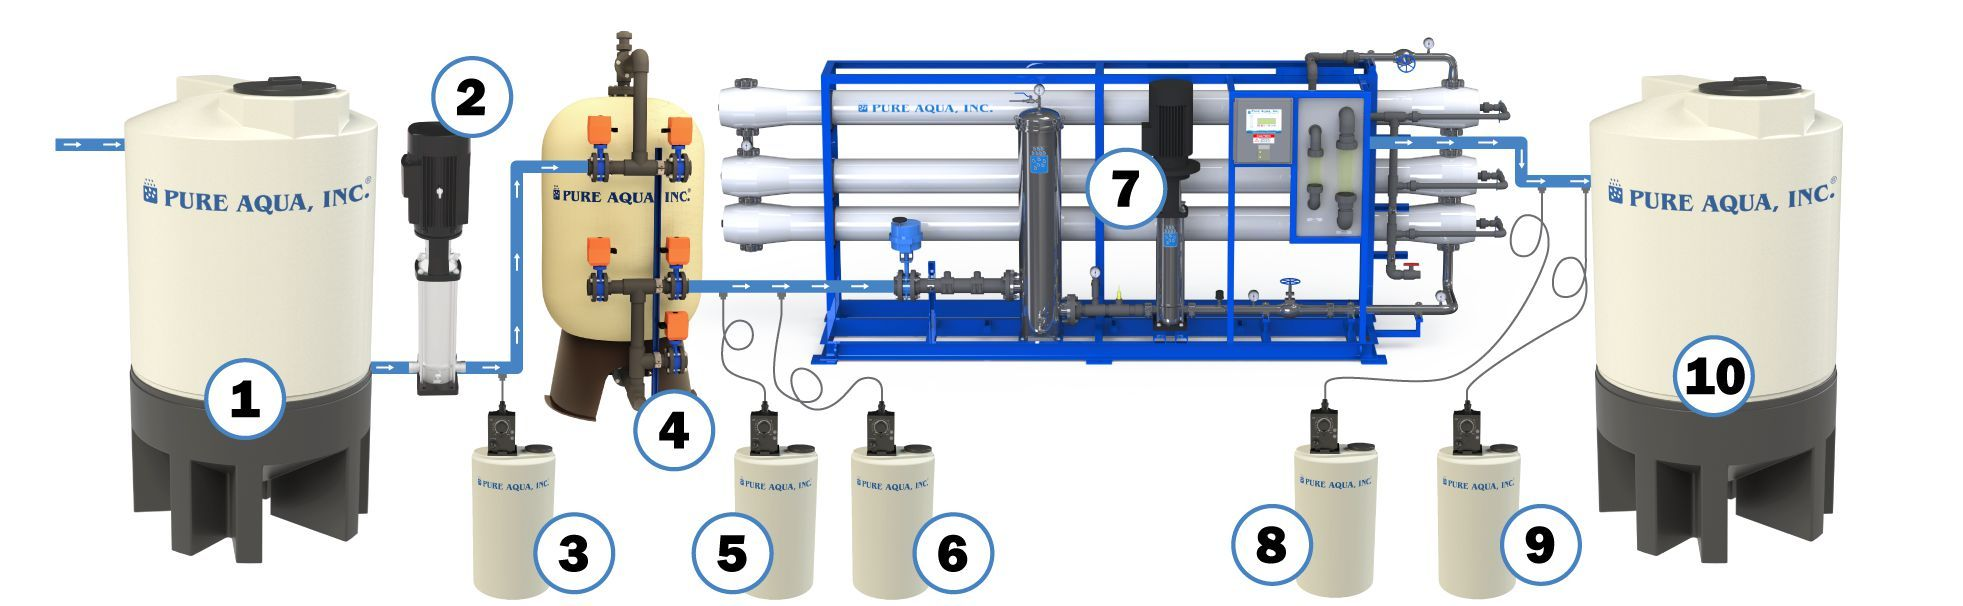 industrial reverse osmosis system RO diagram